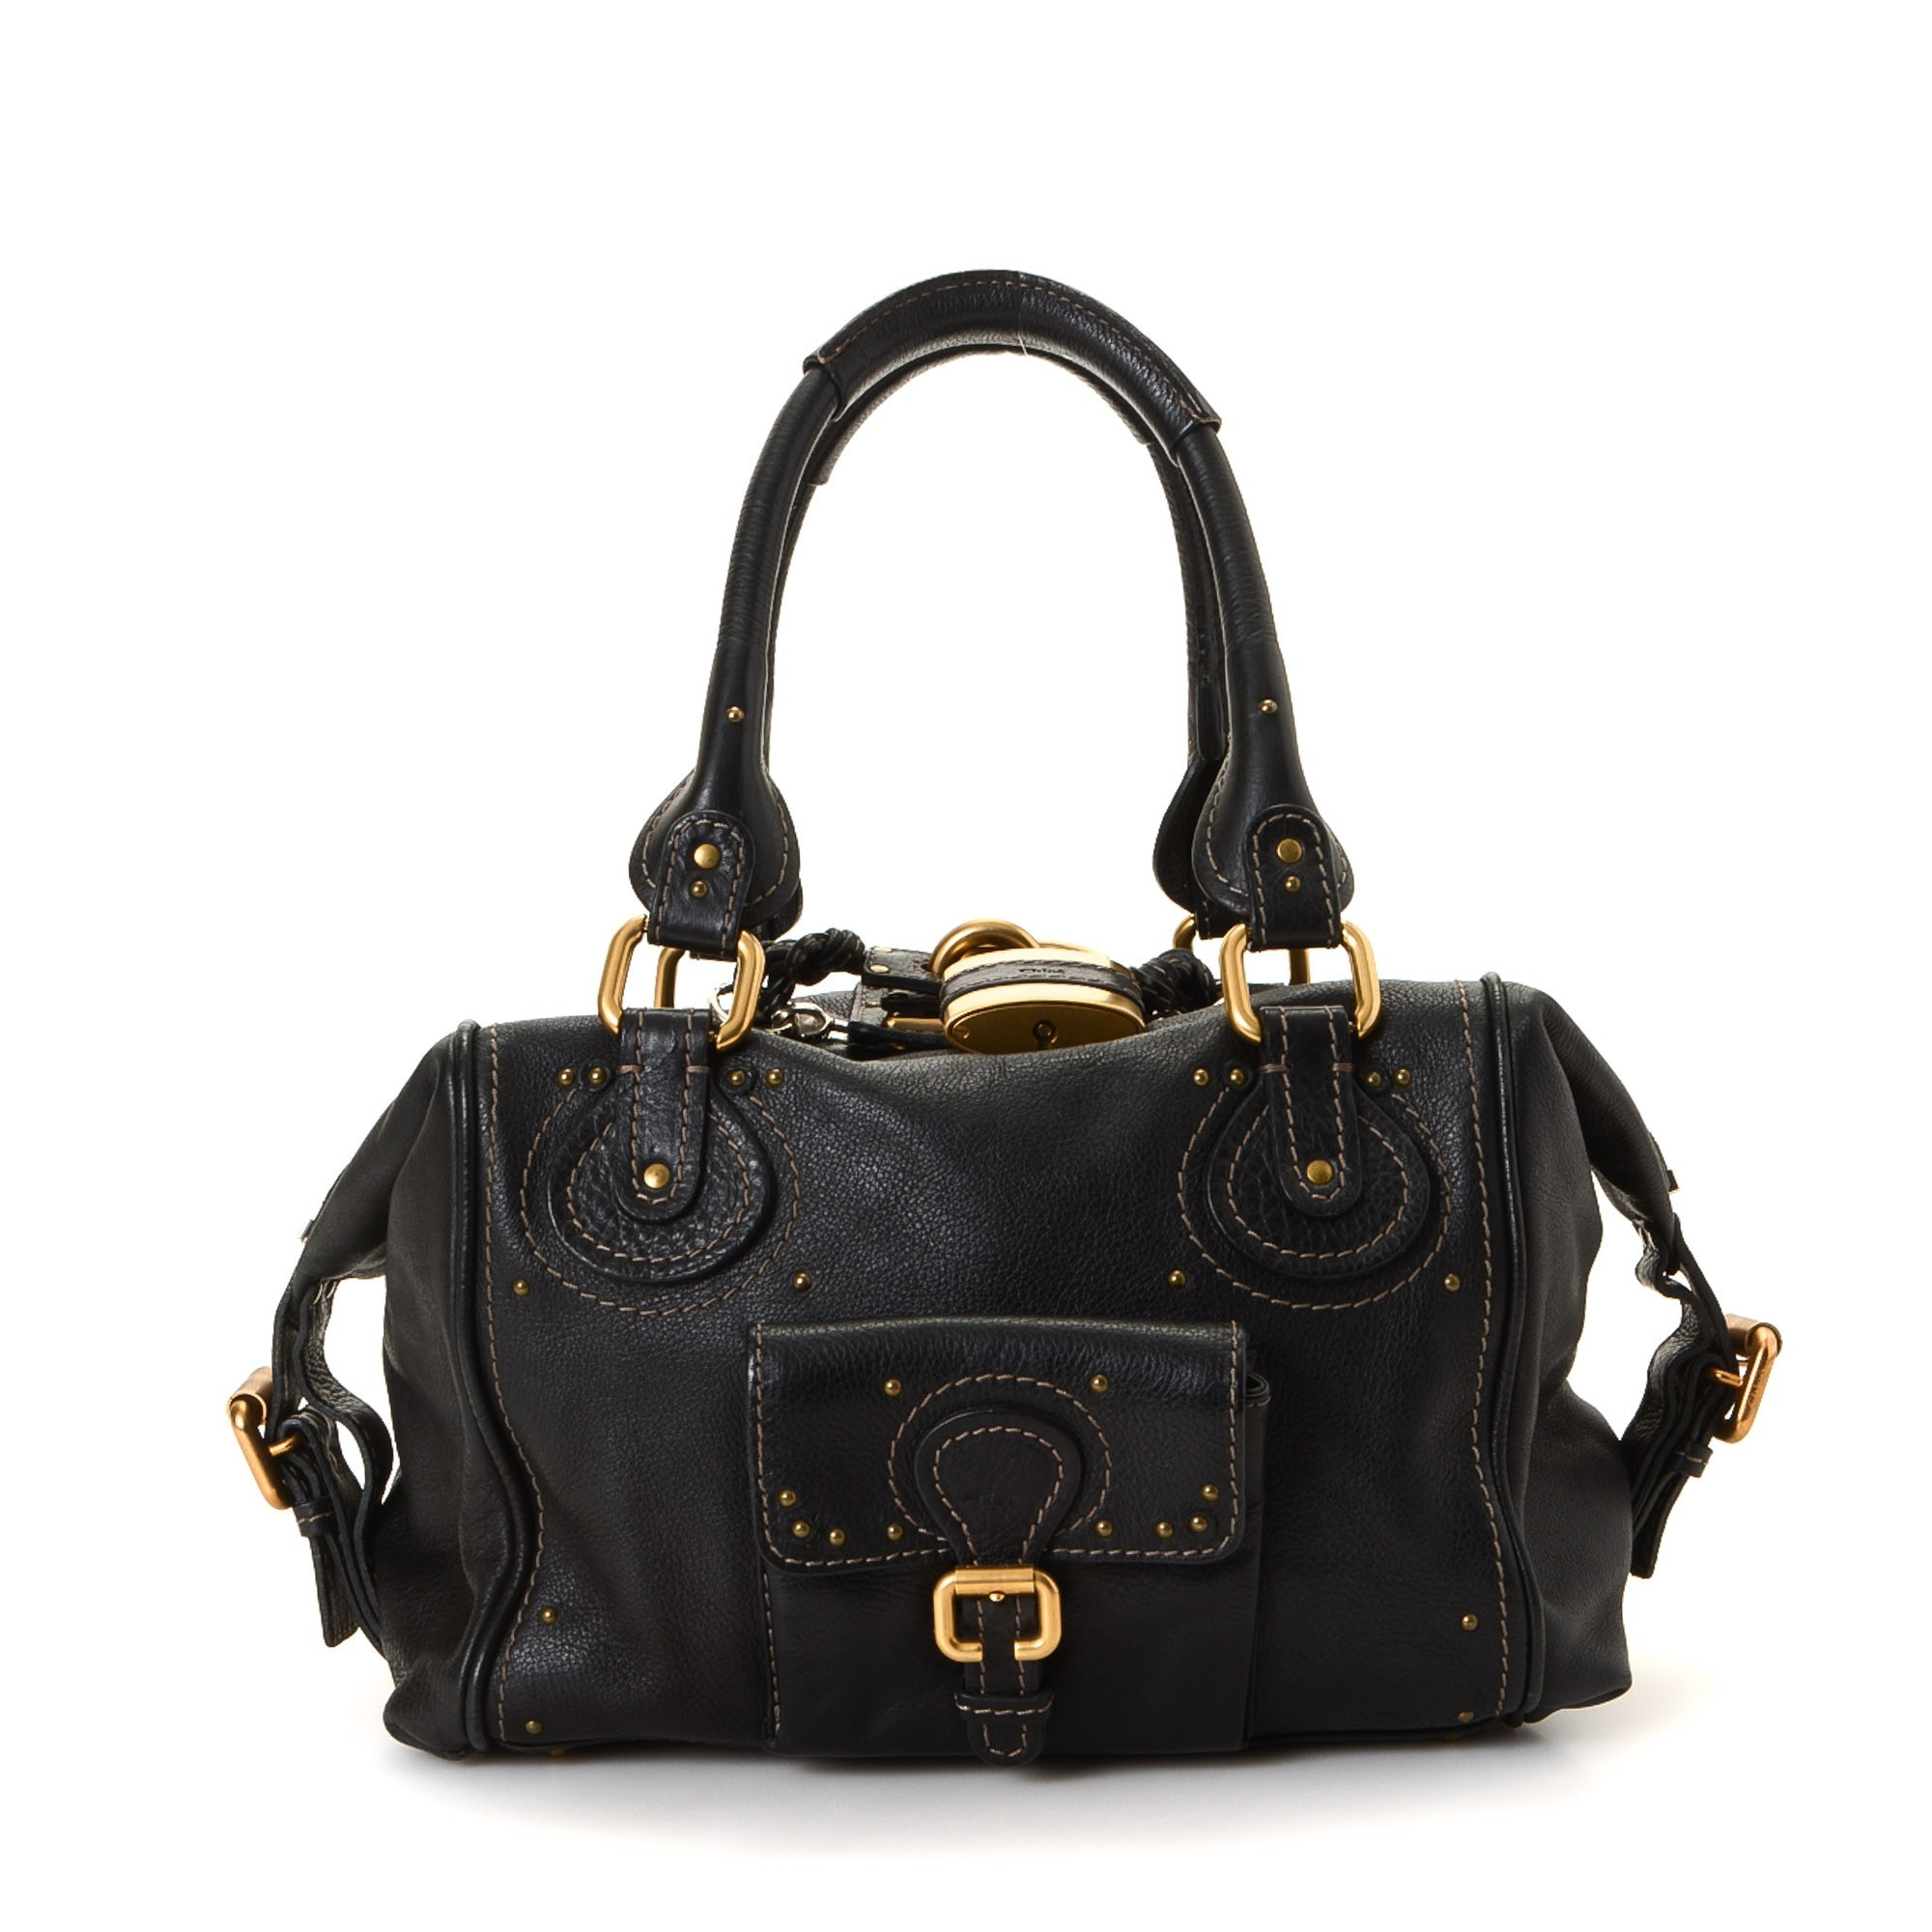 Chloé Paddington Bag Black Leather Shoulder Bag LXRCO